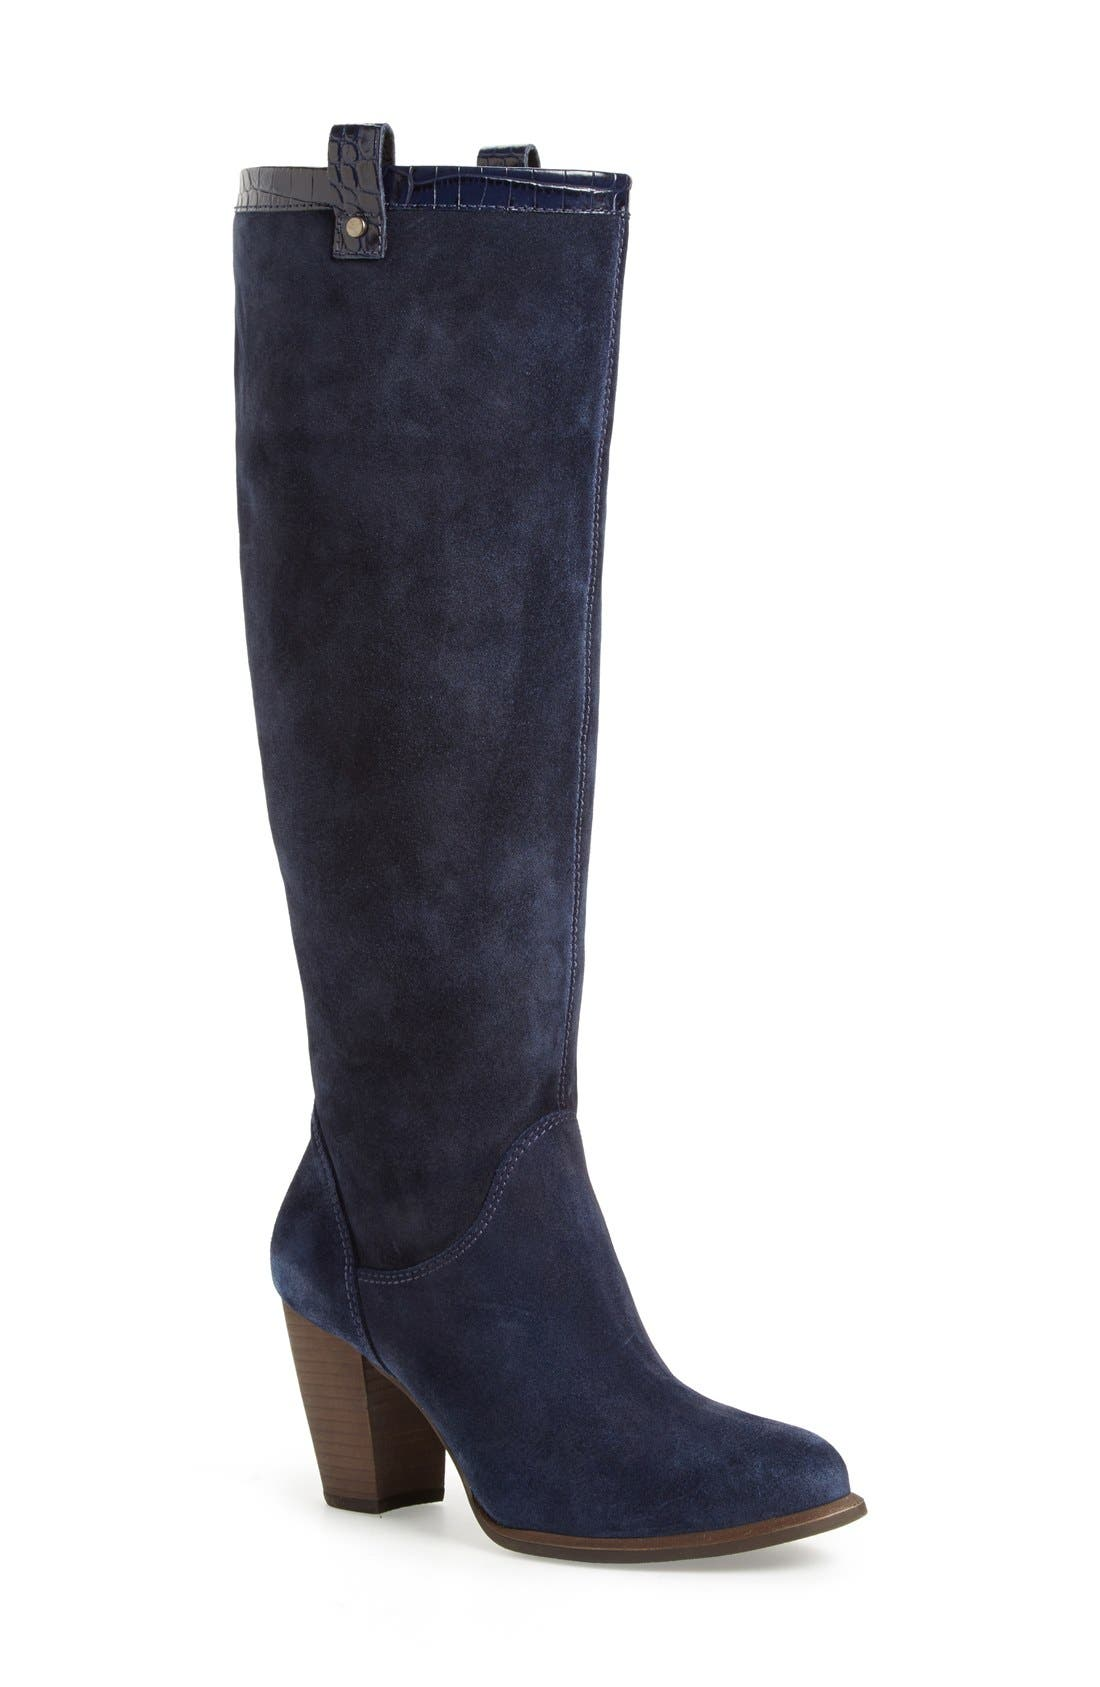 Alternate Image 1 Selected - UGG® 'Ava Croco' Tall Suede Boot (Women)